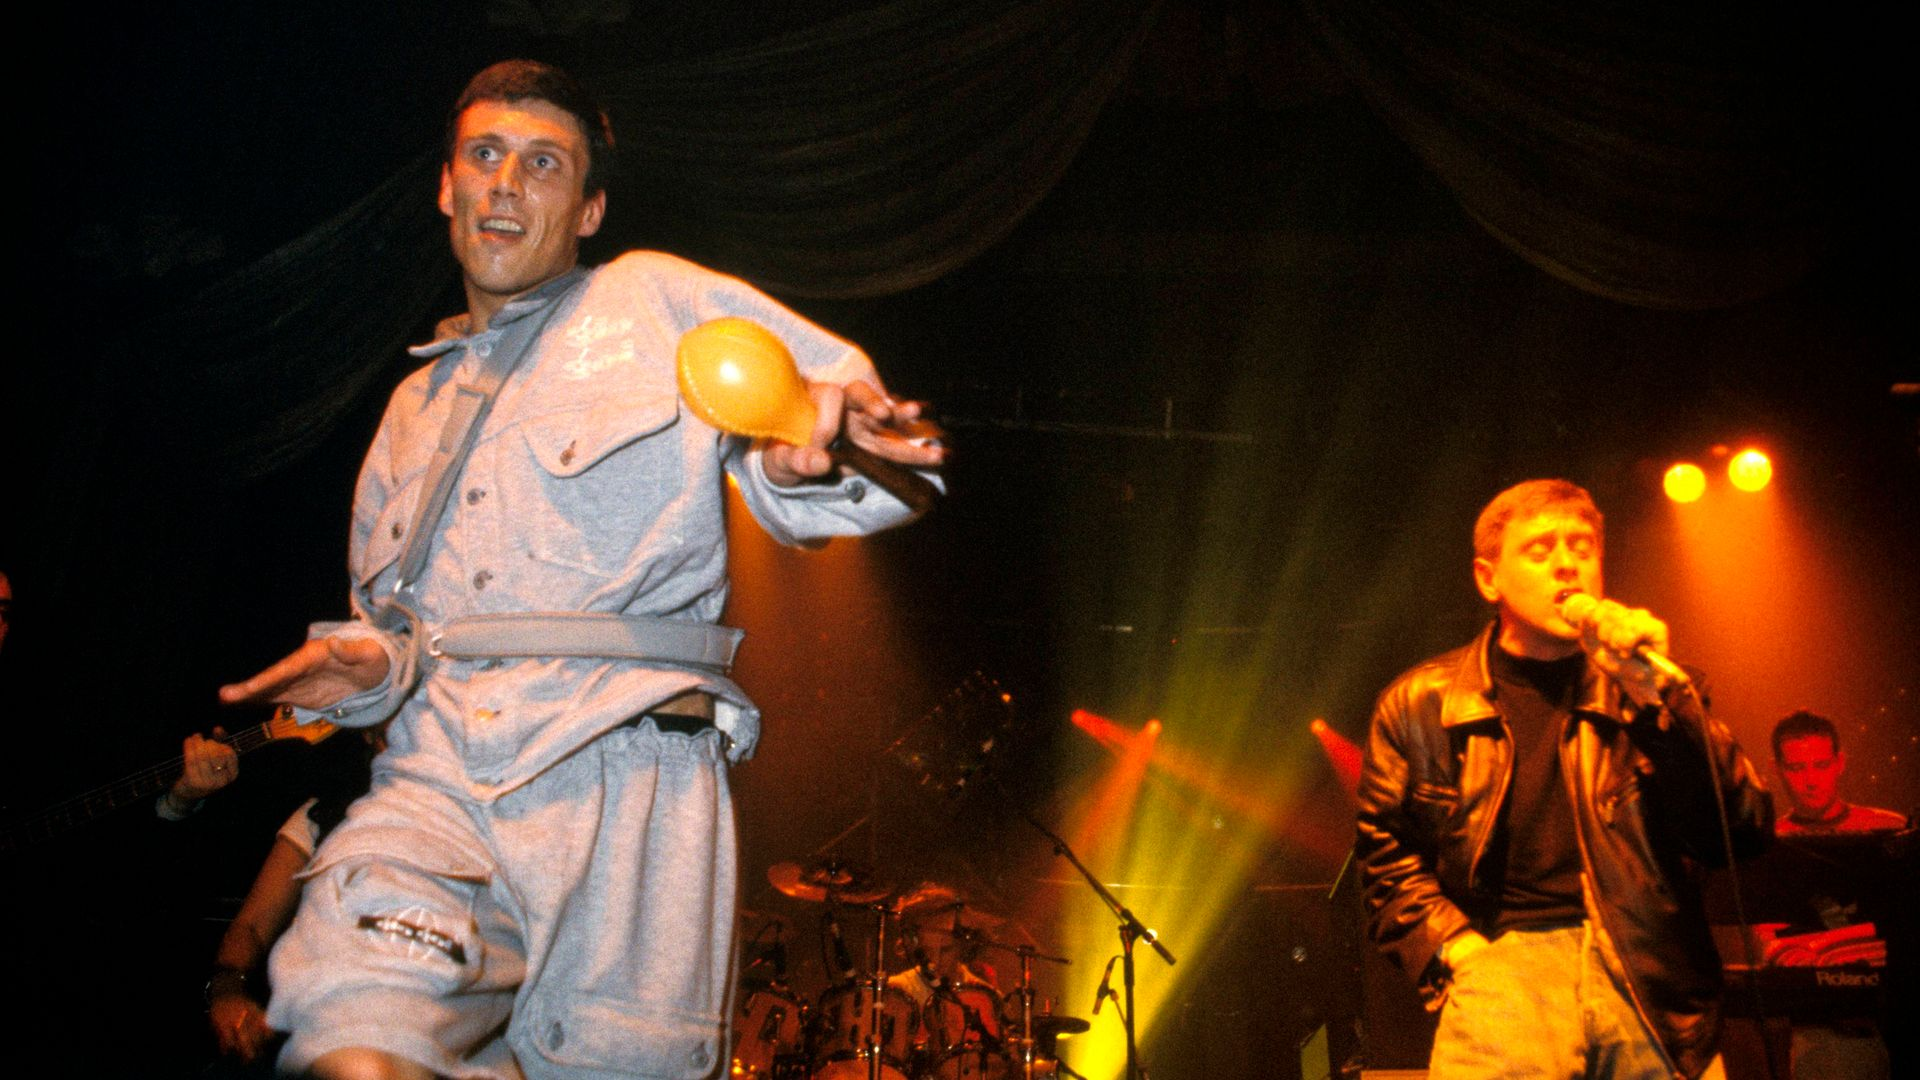 Bez, left, and Shaun Ryder, right, of the Happy Mondays - Credit: Redferns